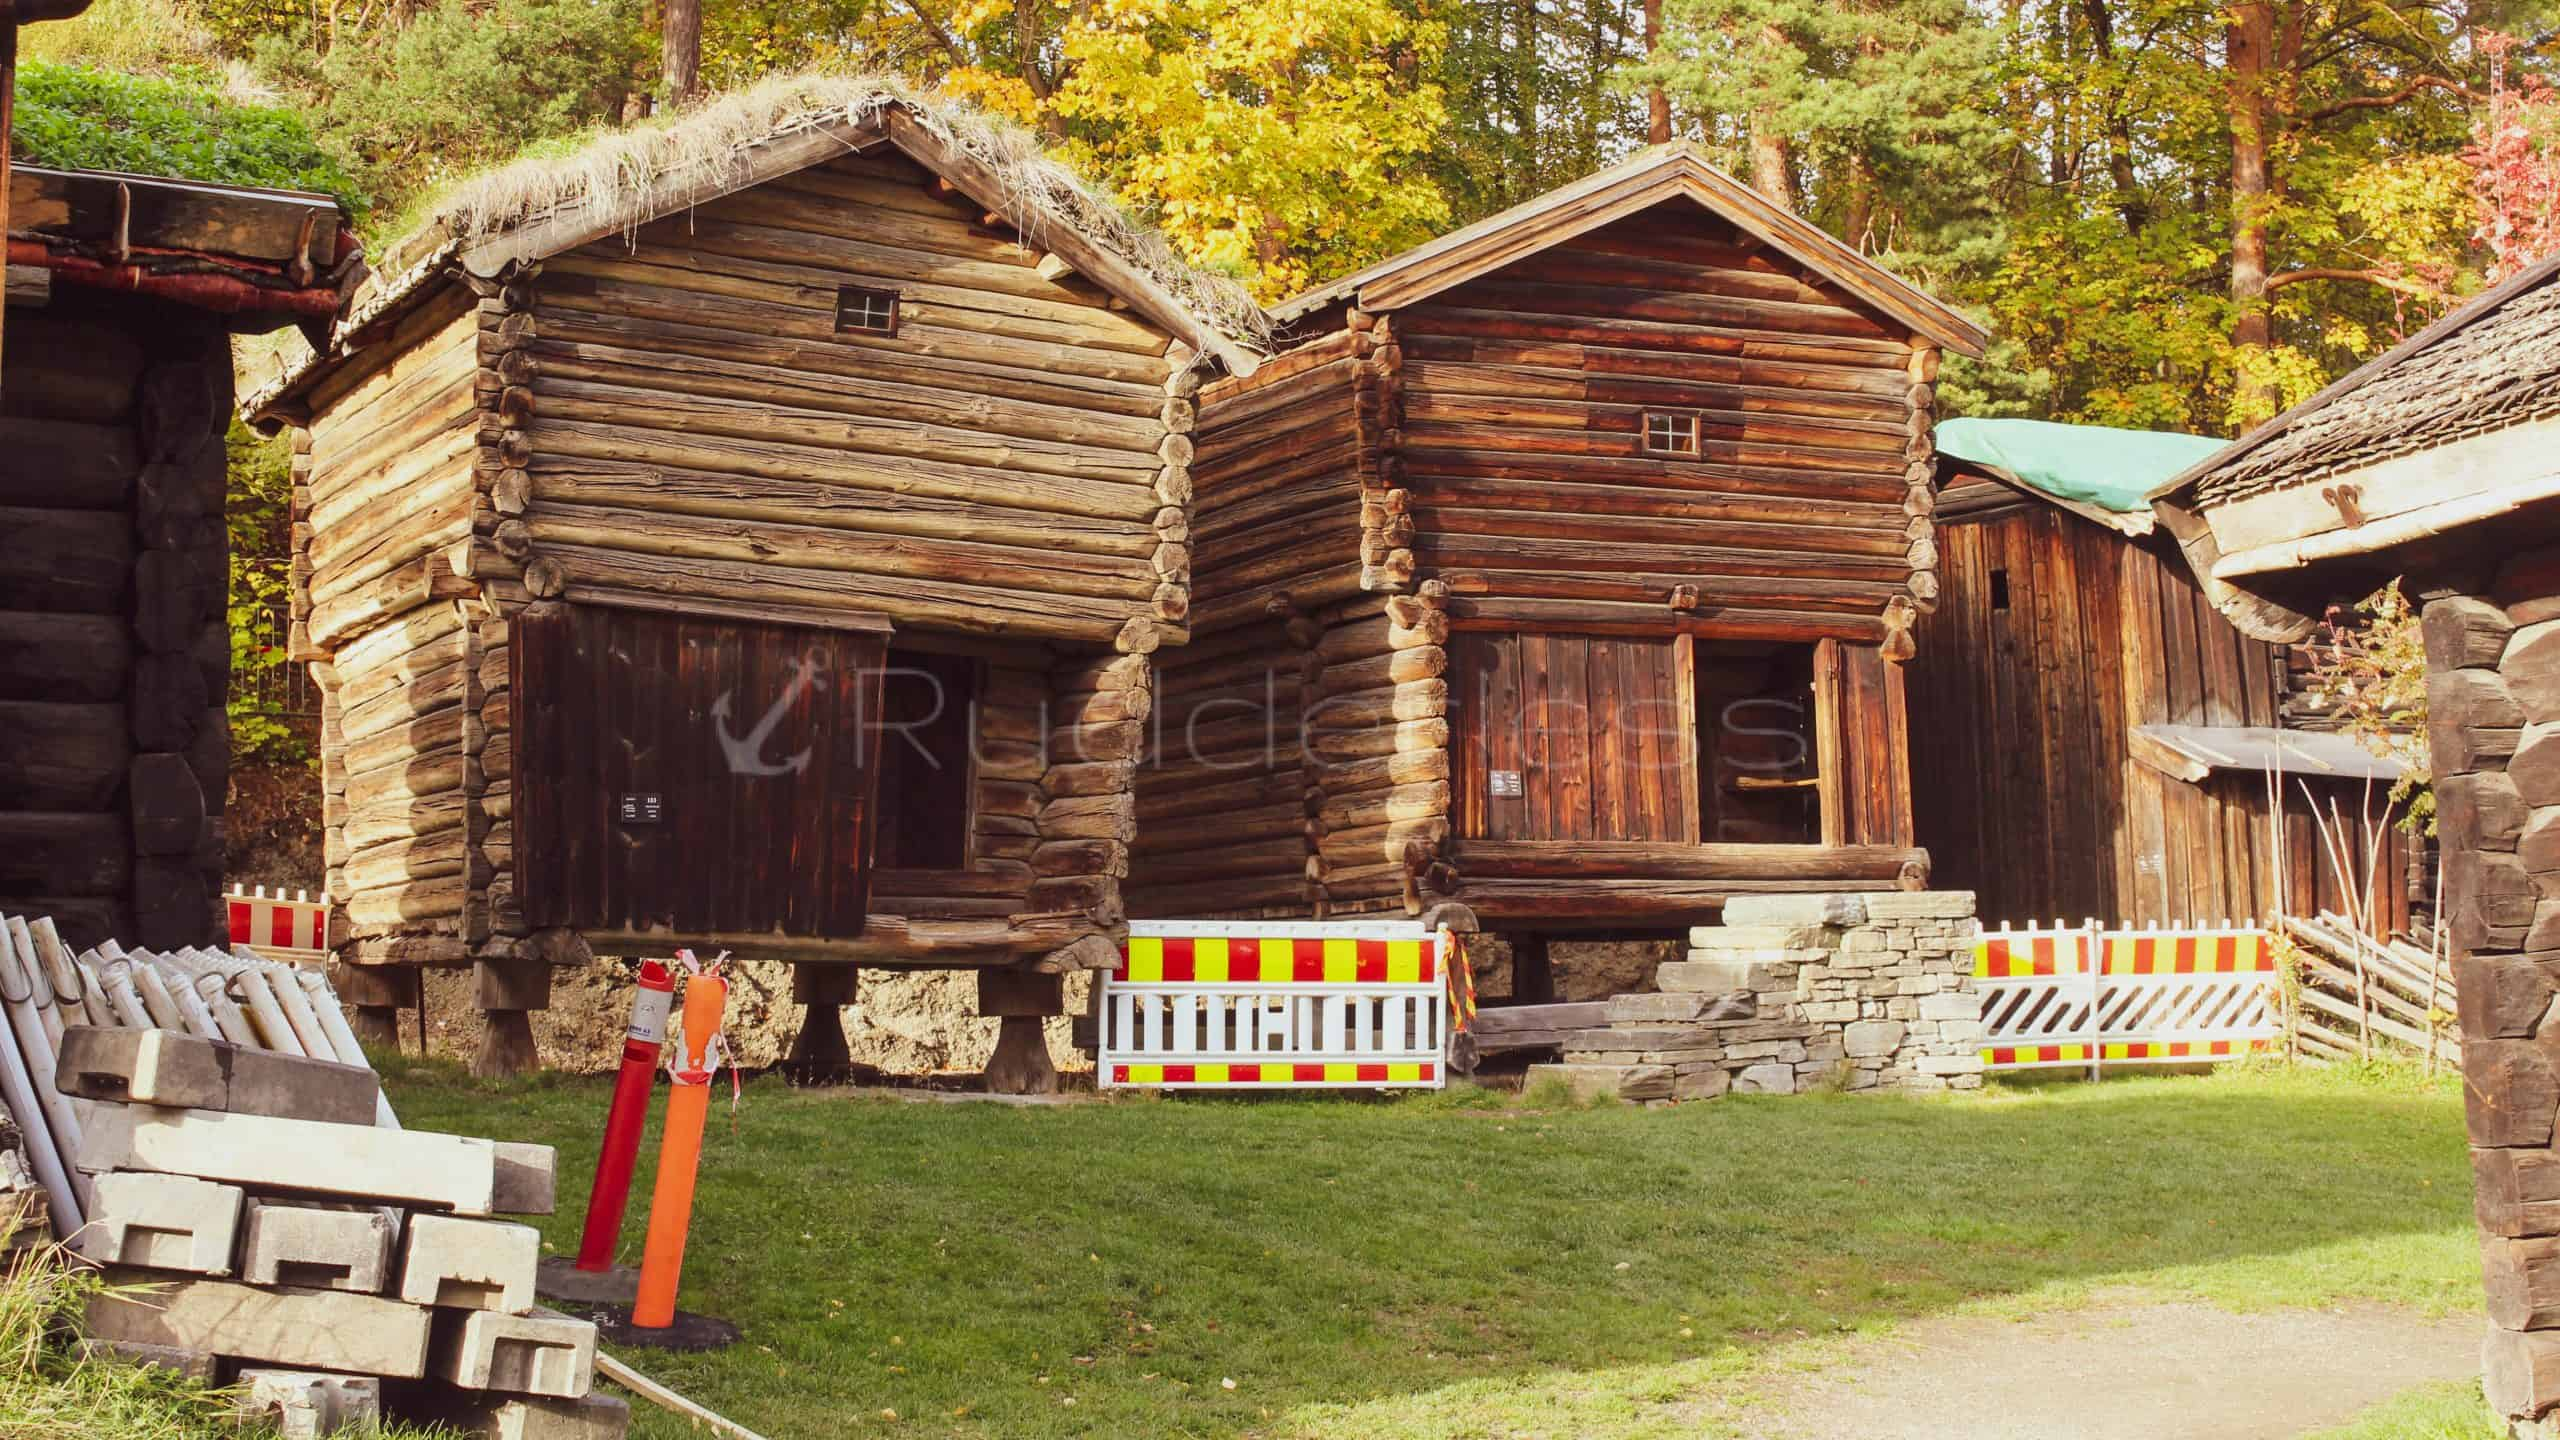 oslo attractions - Norsk Folkemuseum - The Norwegian Museum of Cultural History